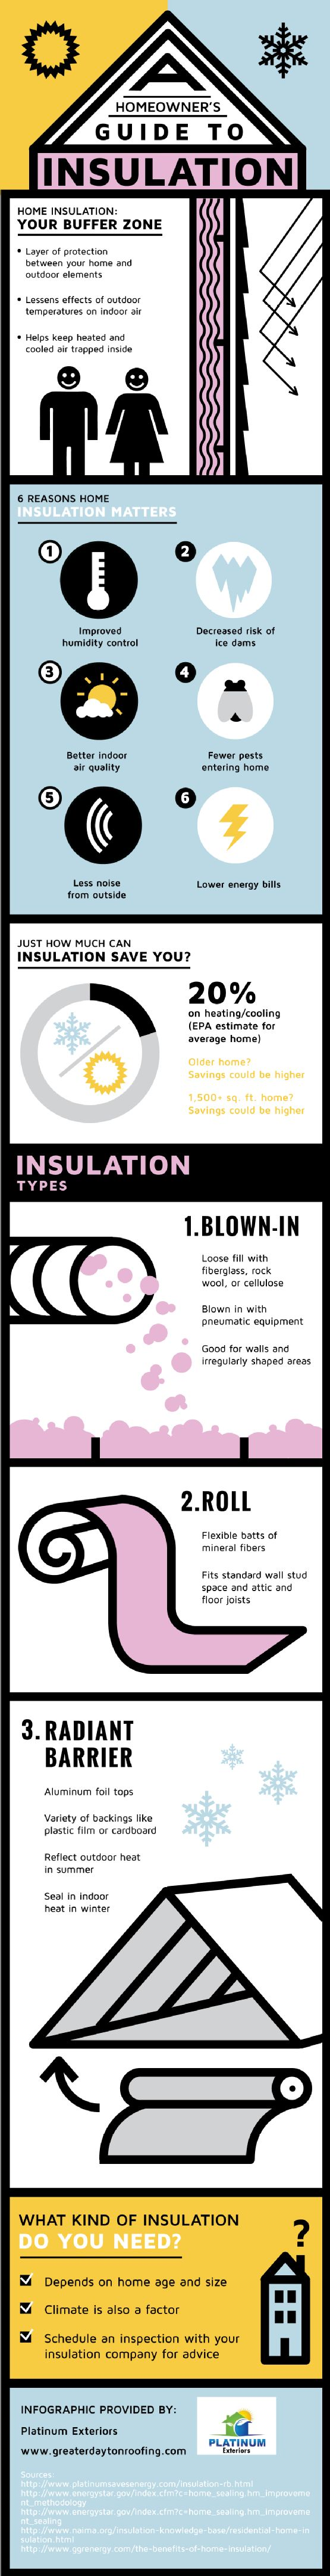 Adding quality insulation to a home can lower monthly energy usage and costs. In fact, the EPA estimates that insulation can save the average homeowne